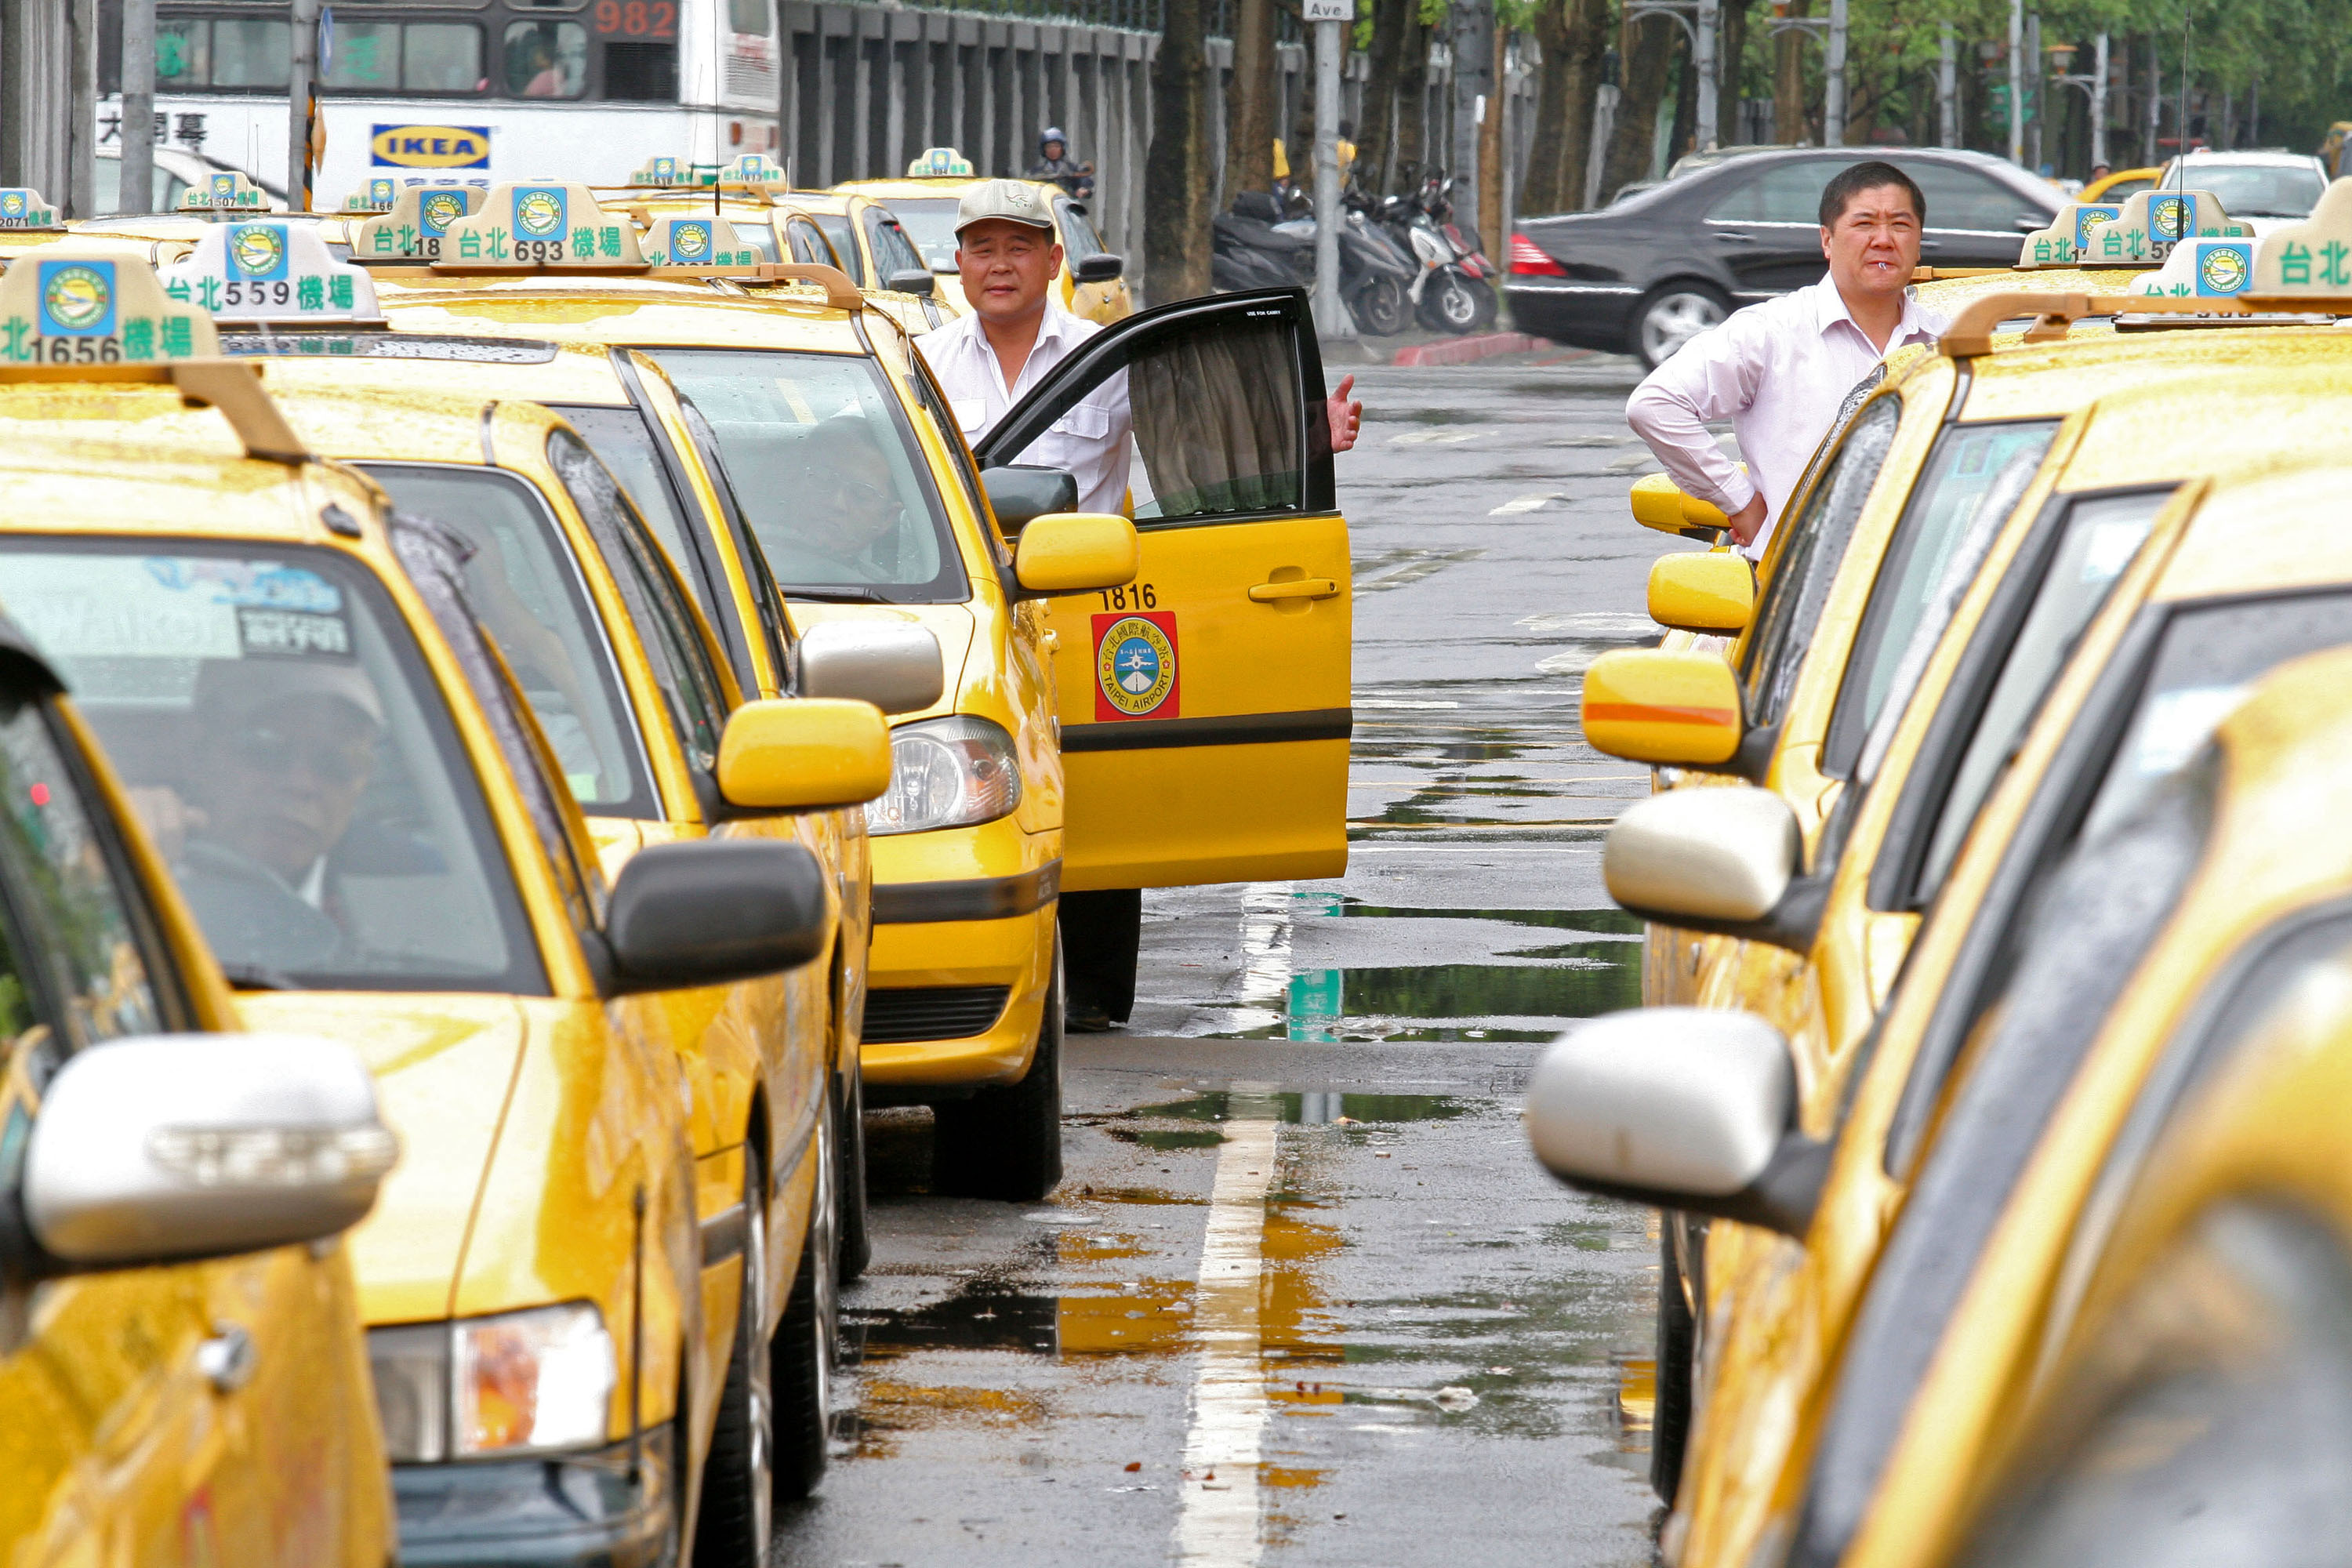 Taxis line up and wait for passengers in Taipei, Taiwan, May